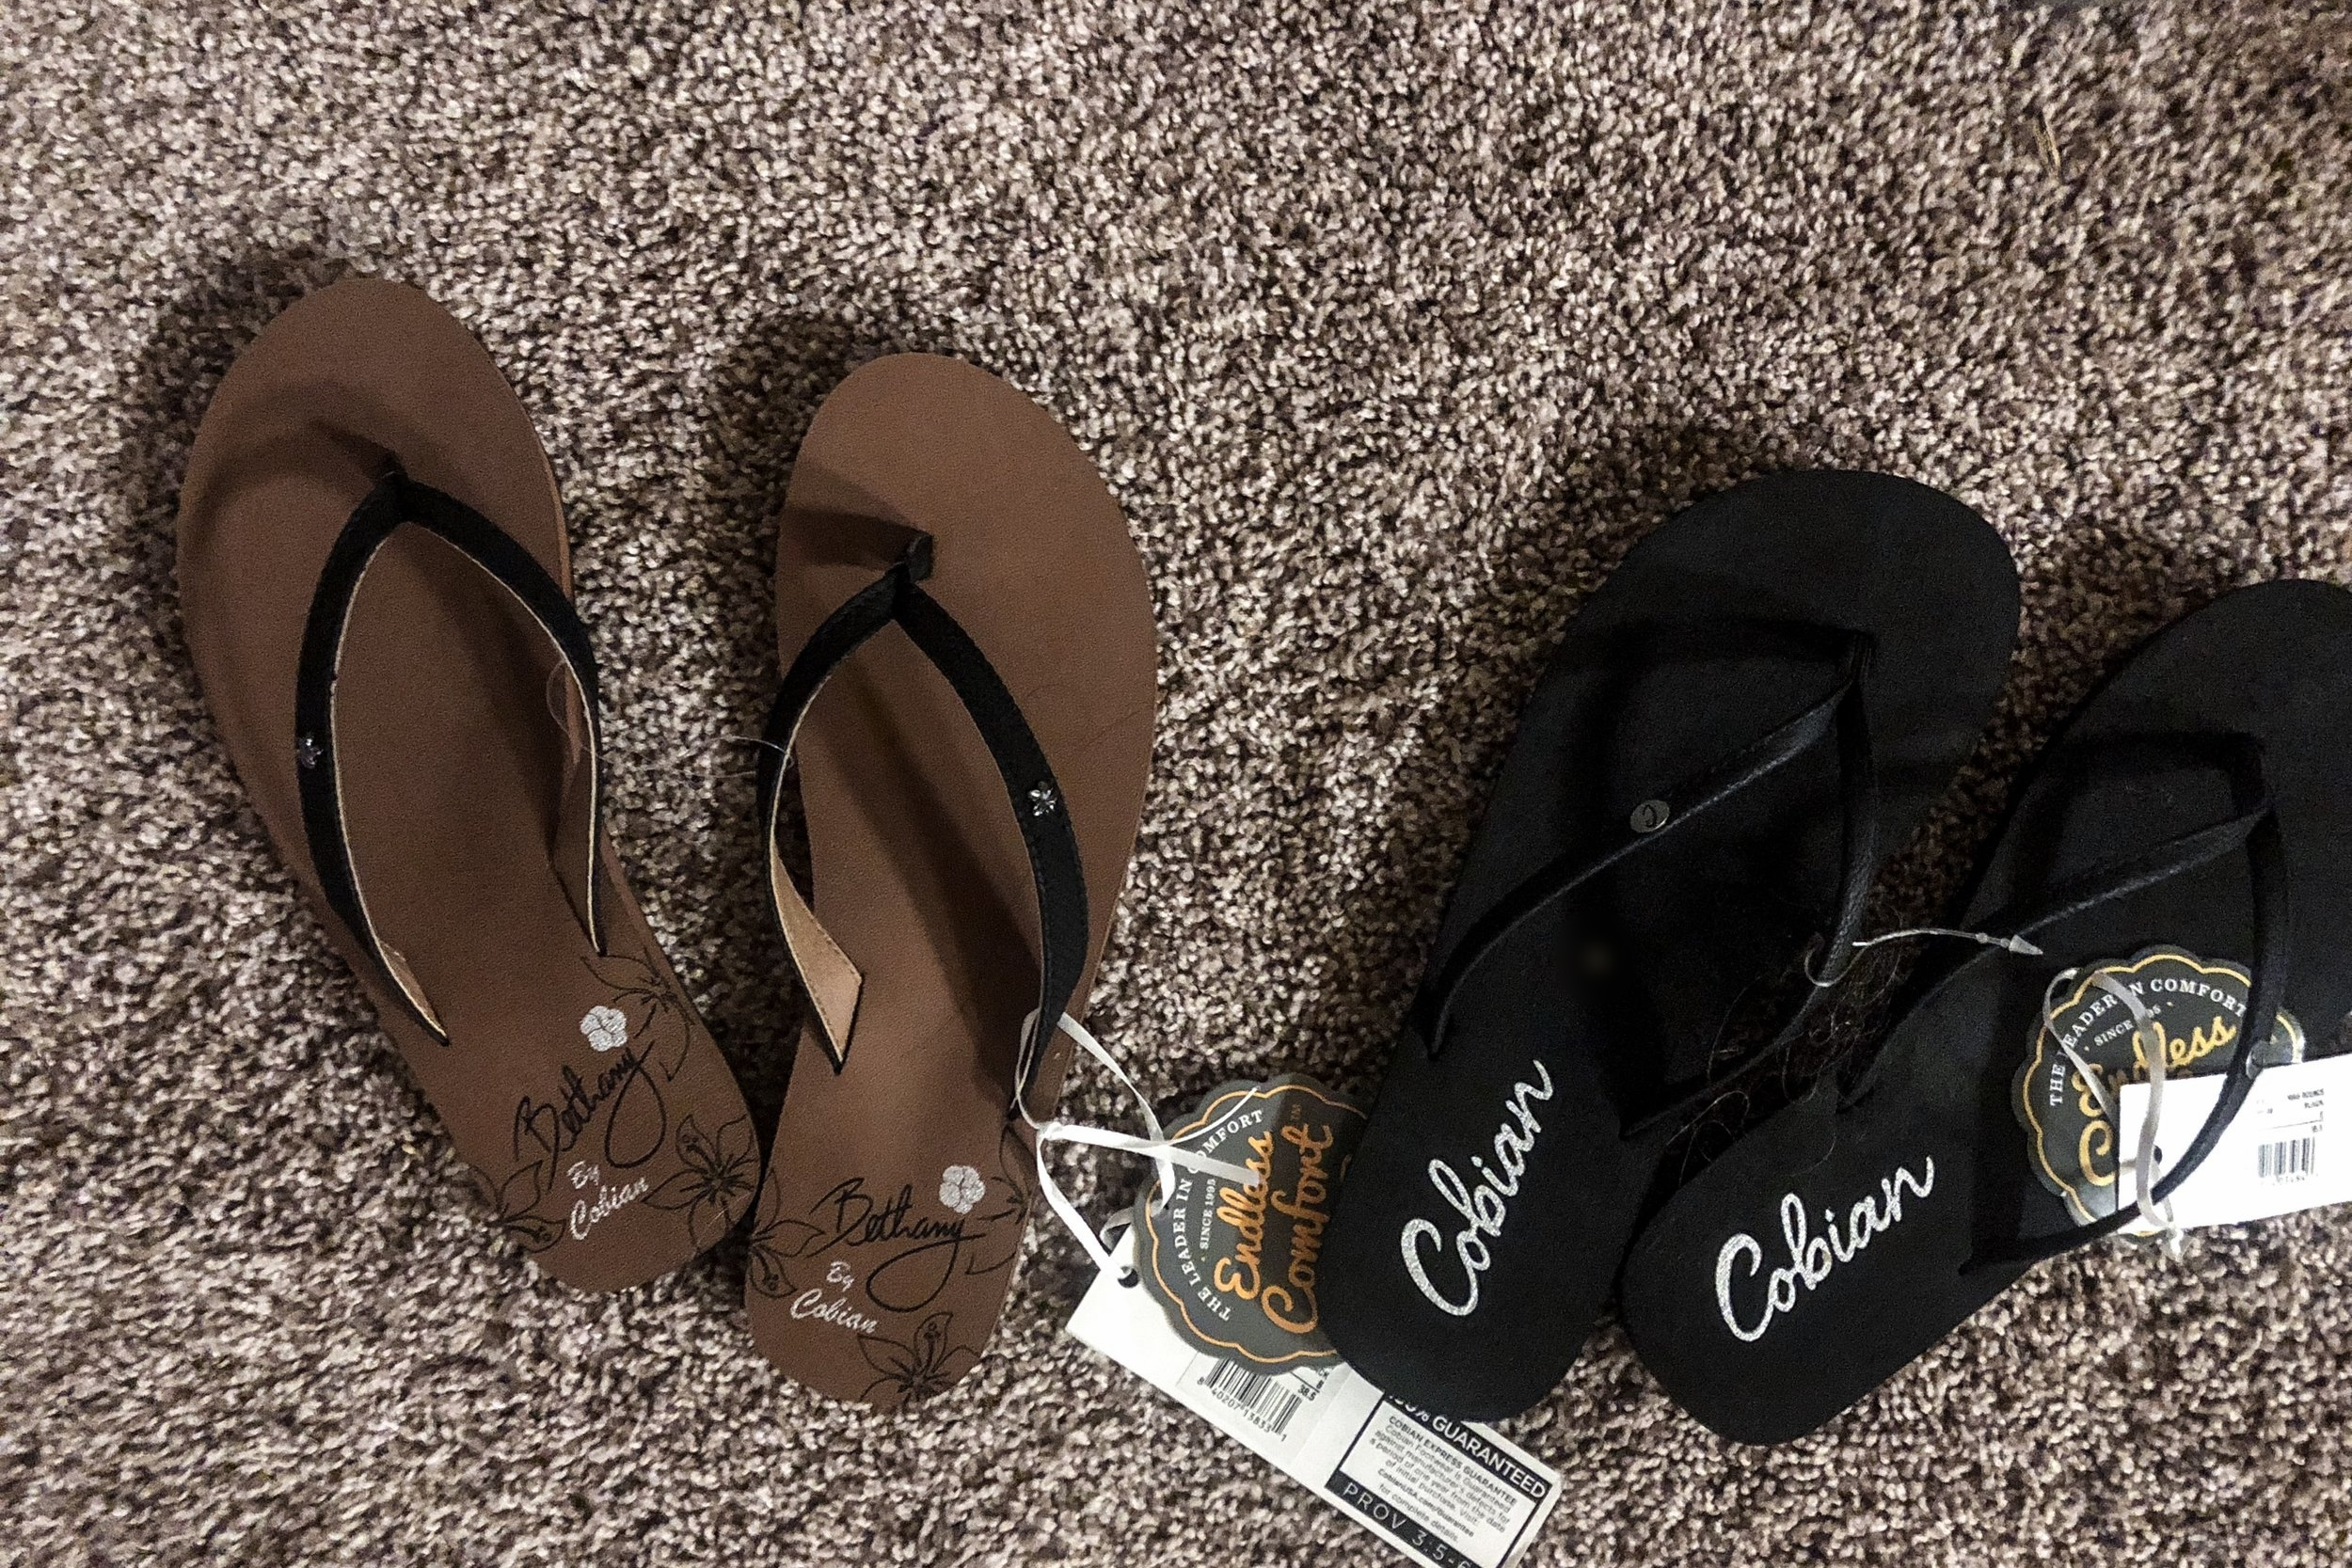 At left, the Hanalei in black from the Bethany Collection. At right, the Nias Bounce in black.